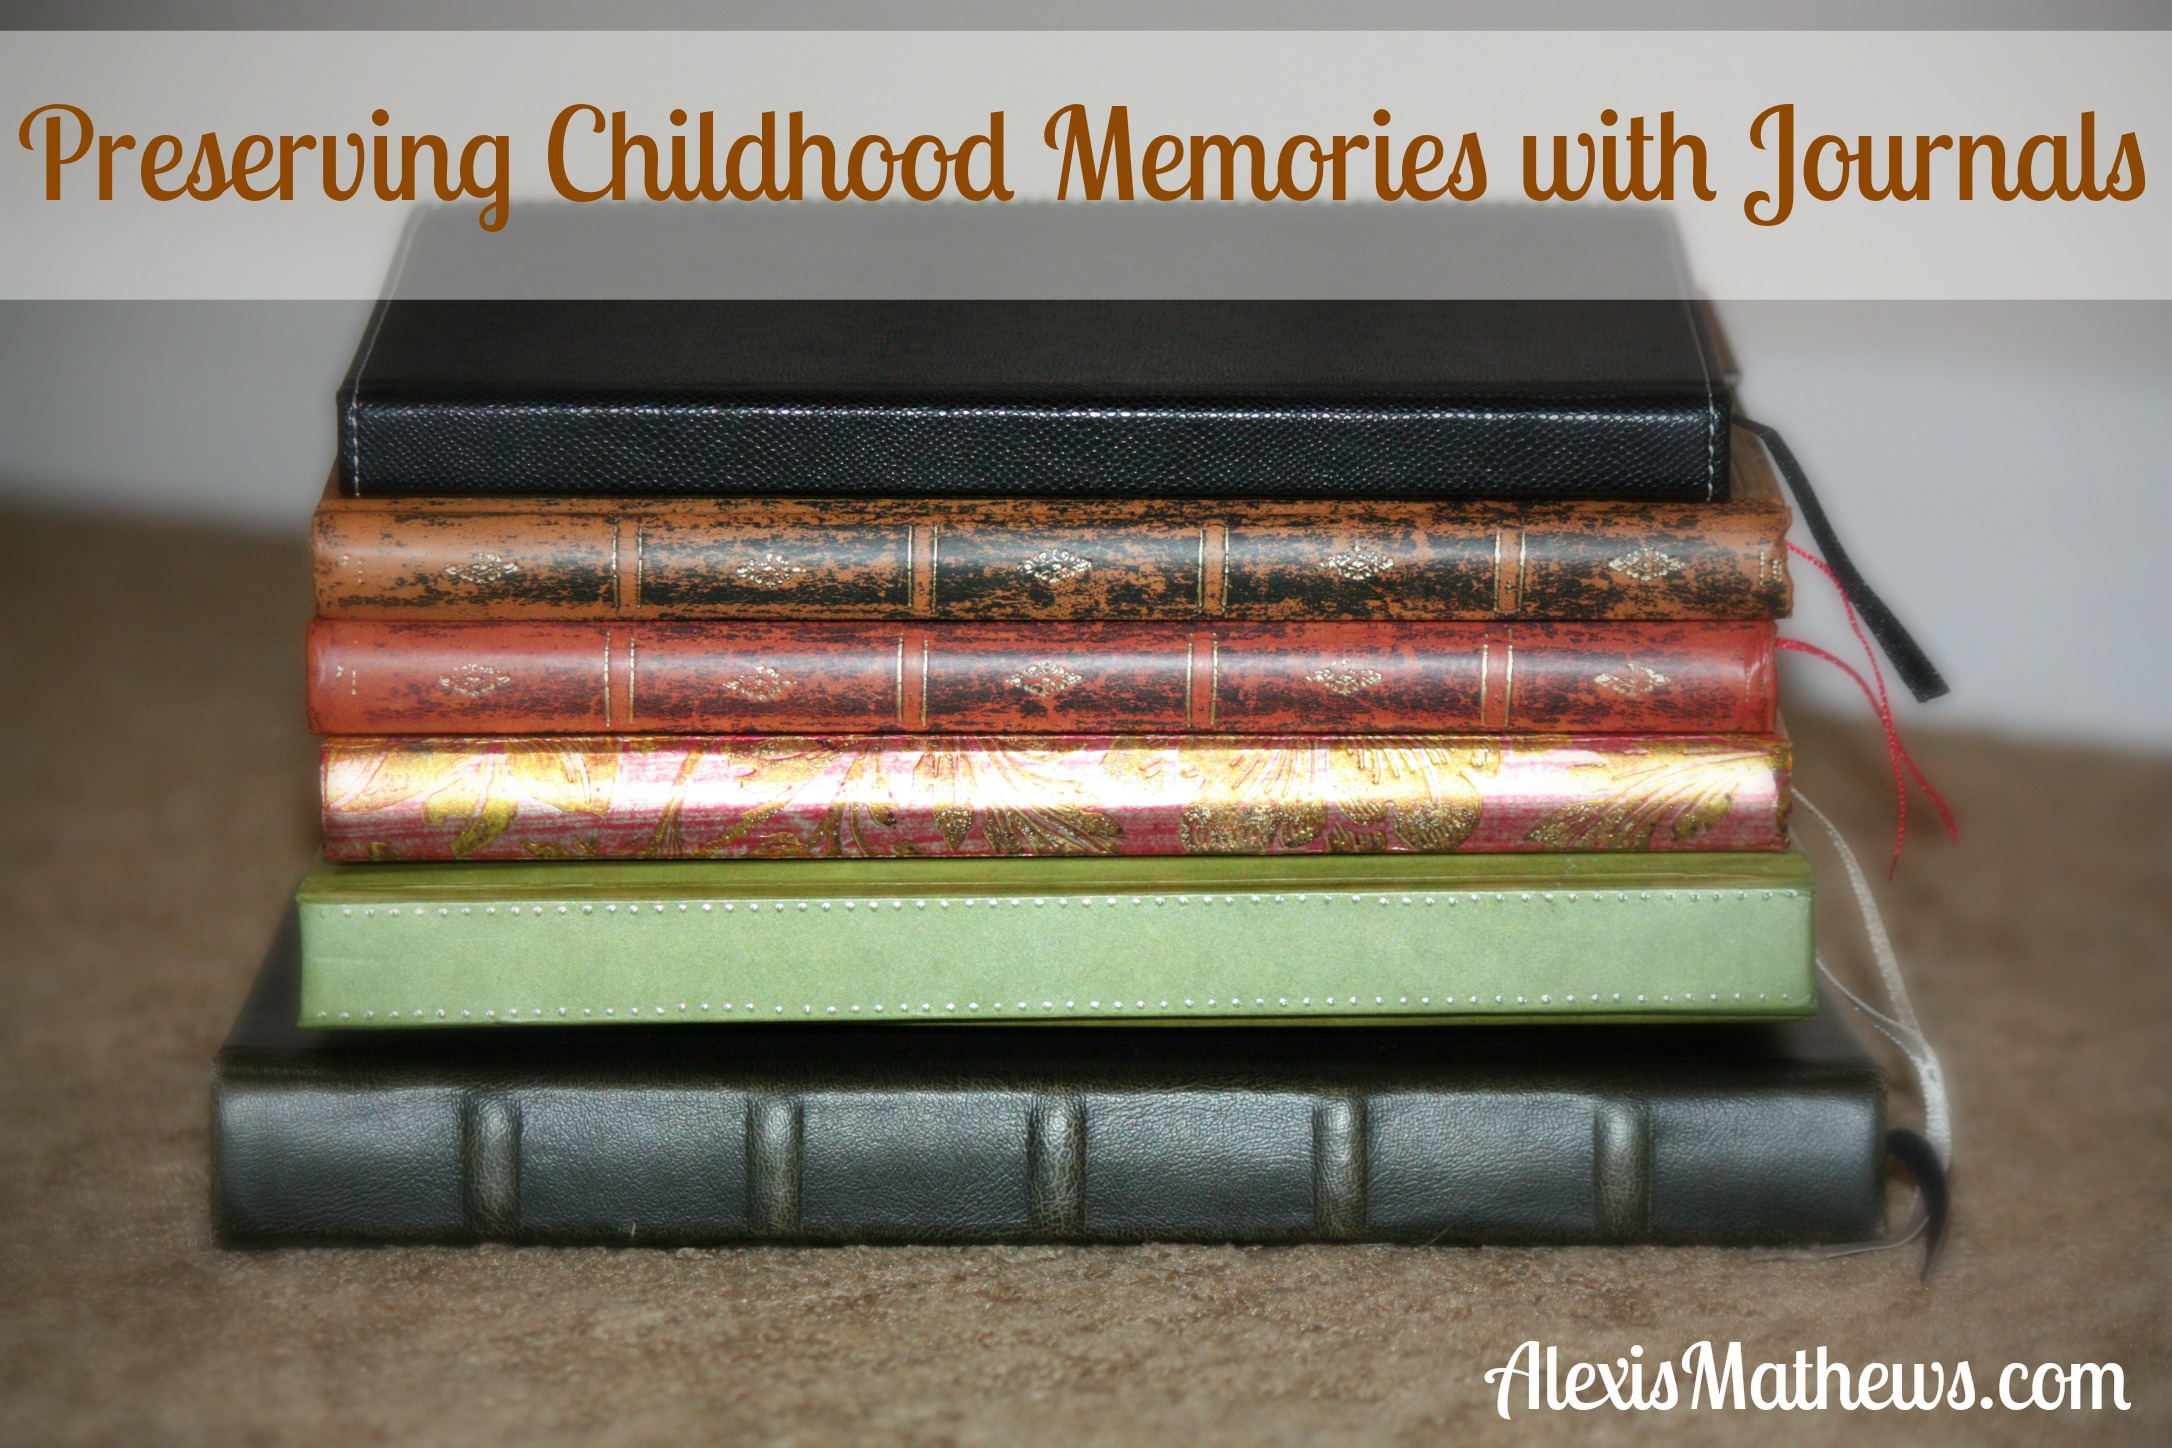 Preserving Childhood Memories with Journals